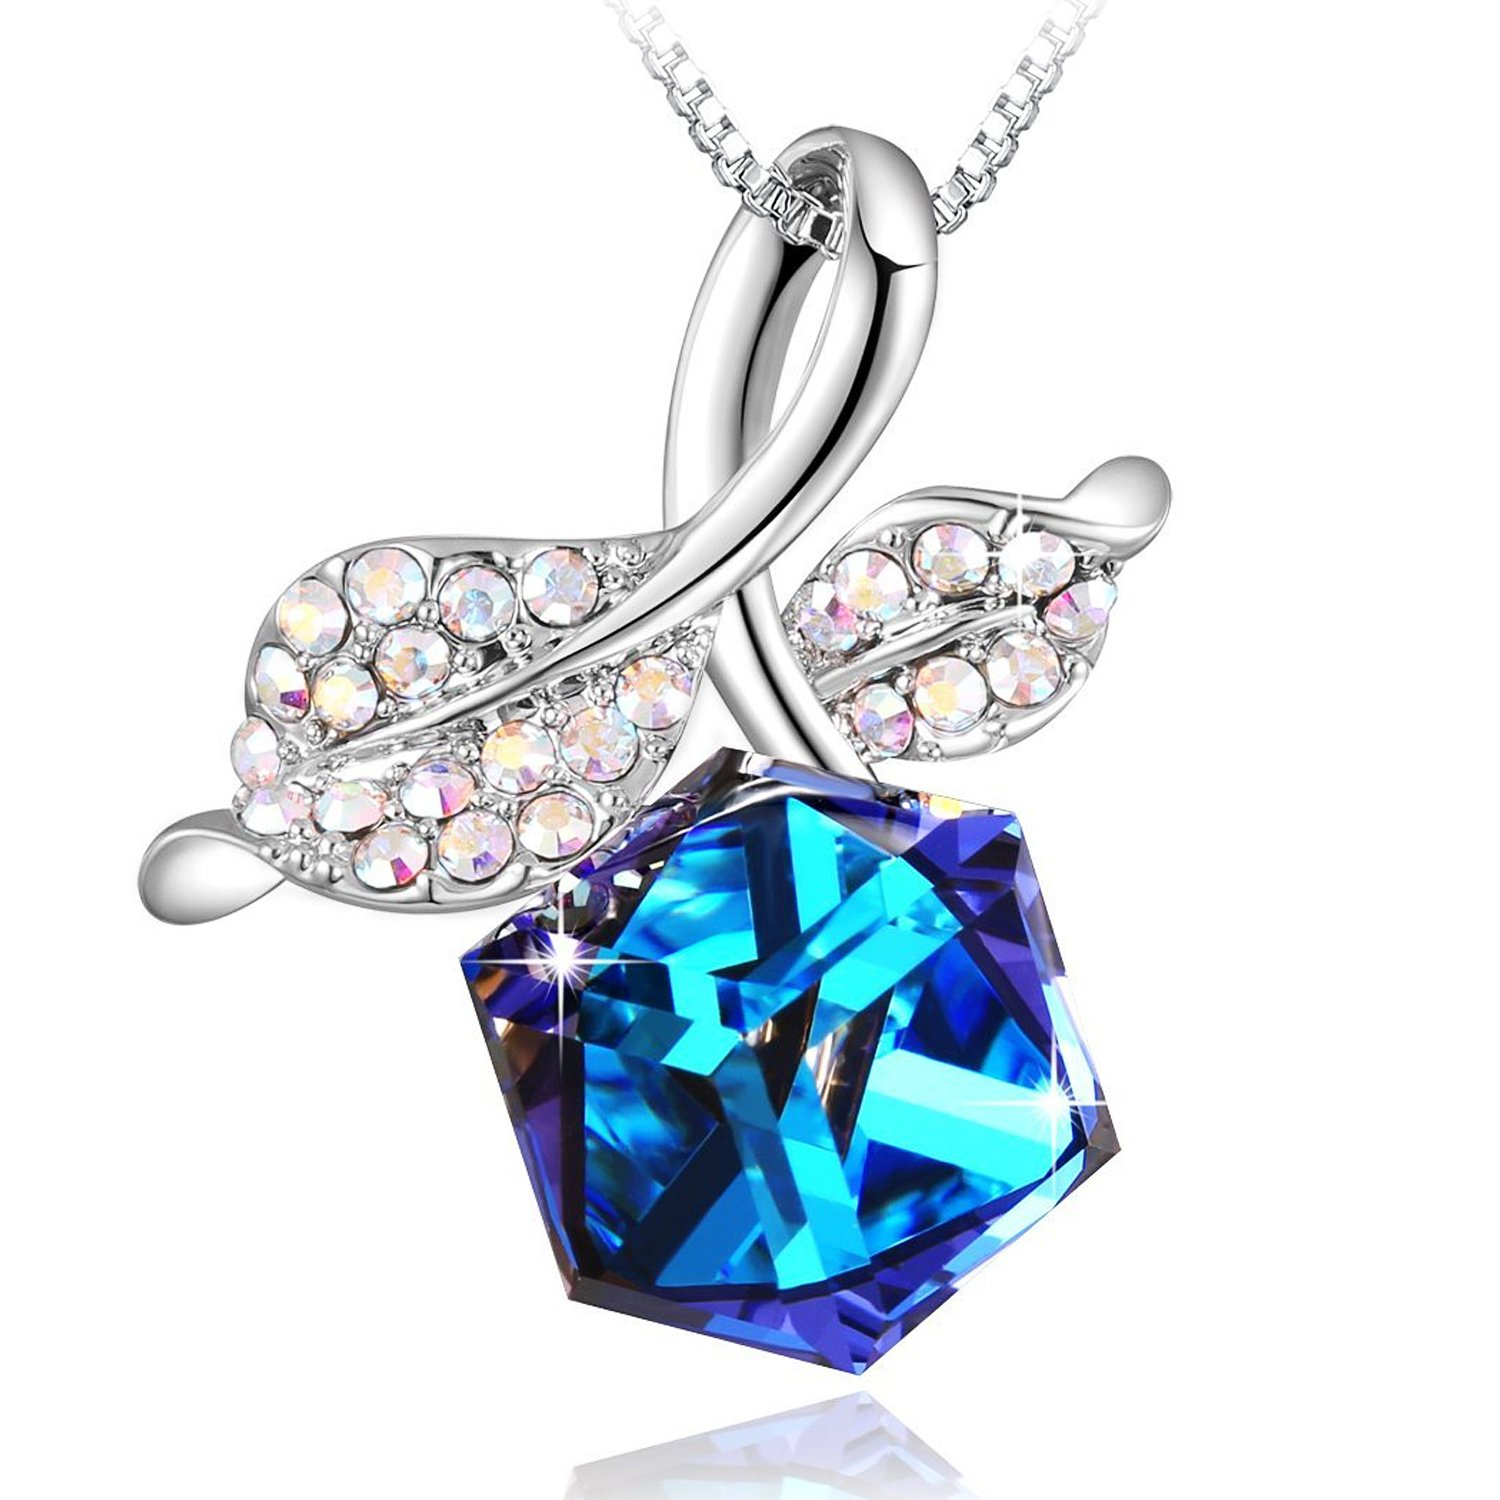 4ba5b4c96f62 PLATO H Women Necklace - Romantic Rose Leaf and Cube Pendant Necklace with❤ Crystals from Swarovski❤